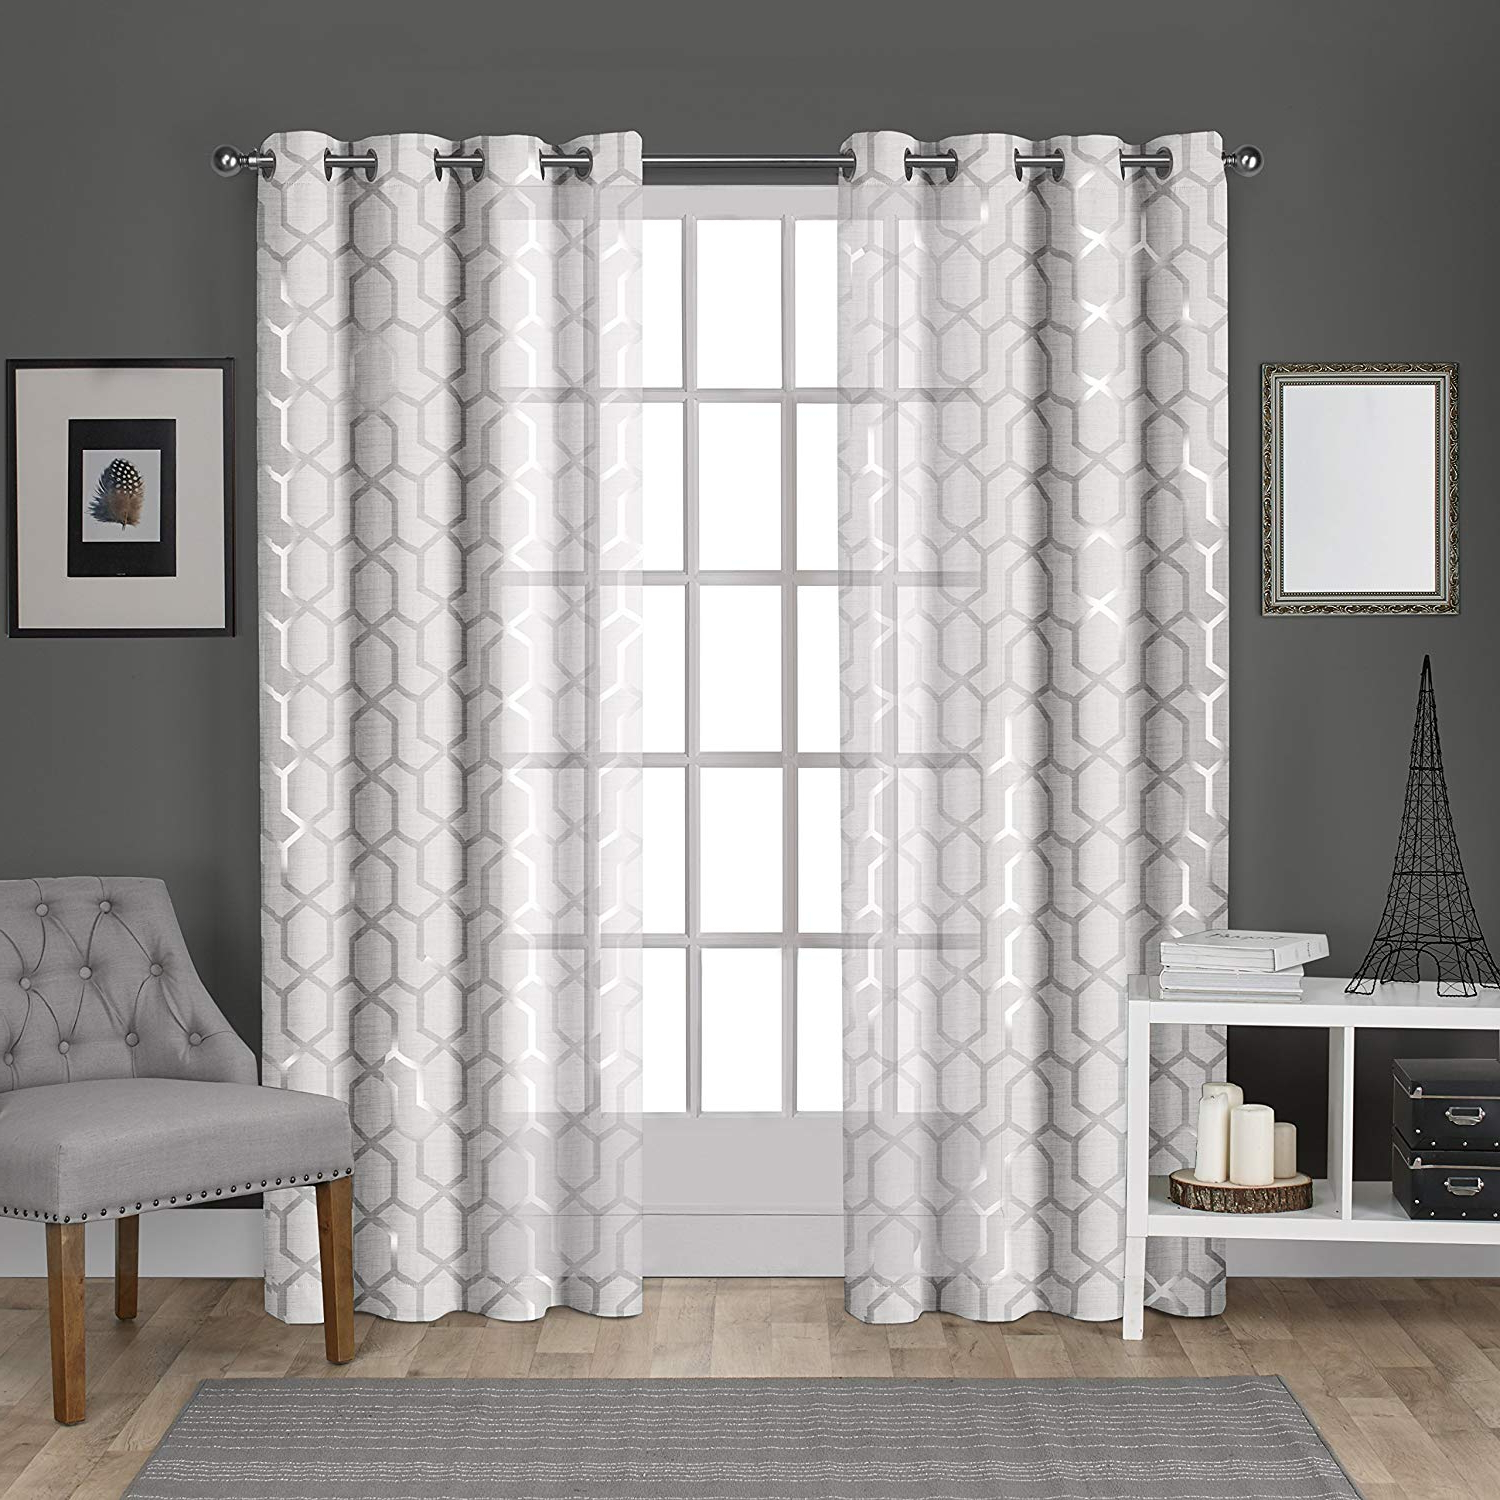 Most Up To Date Total Blackout Metallic Print Grommet Top Curtain Panels In Exclusive Home Curtains Panza Metallic Geometric Print Sheer Window Curtain Panel Pair With Grommet Top, 54x96, Winter White, Silver, 2 Piece (View 9 of 20)